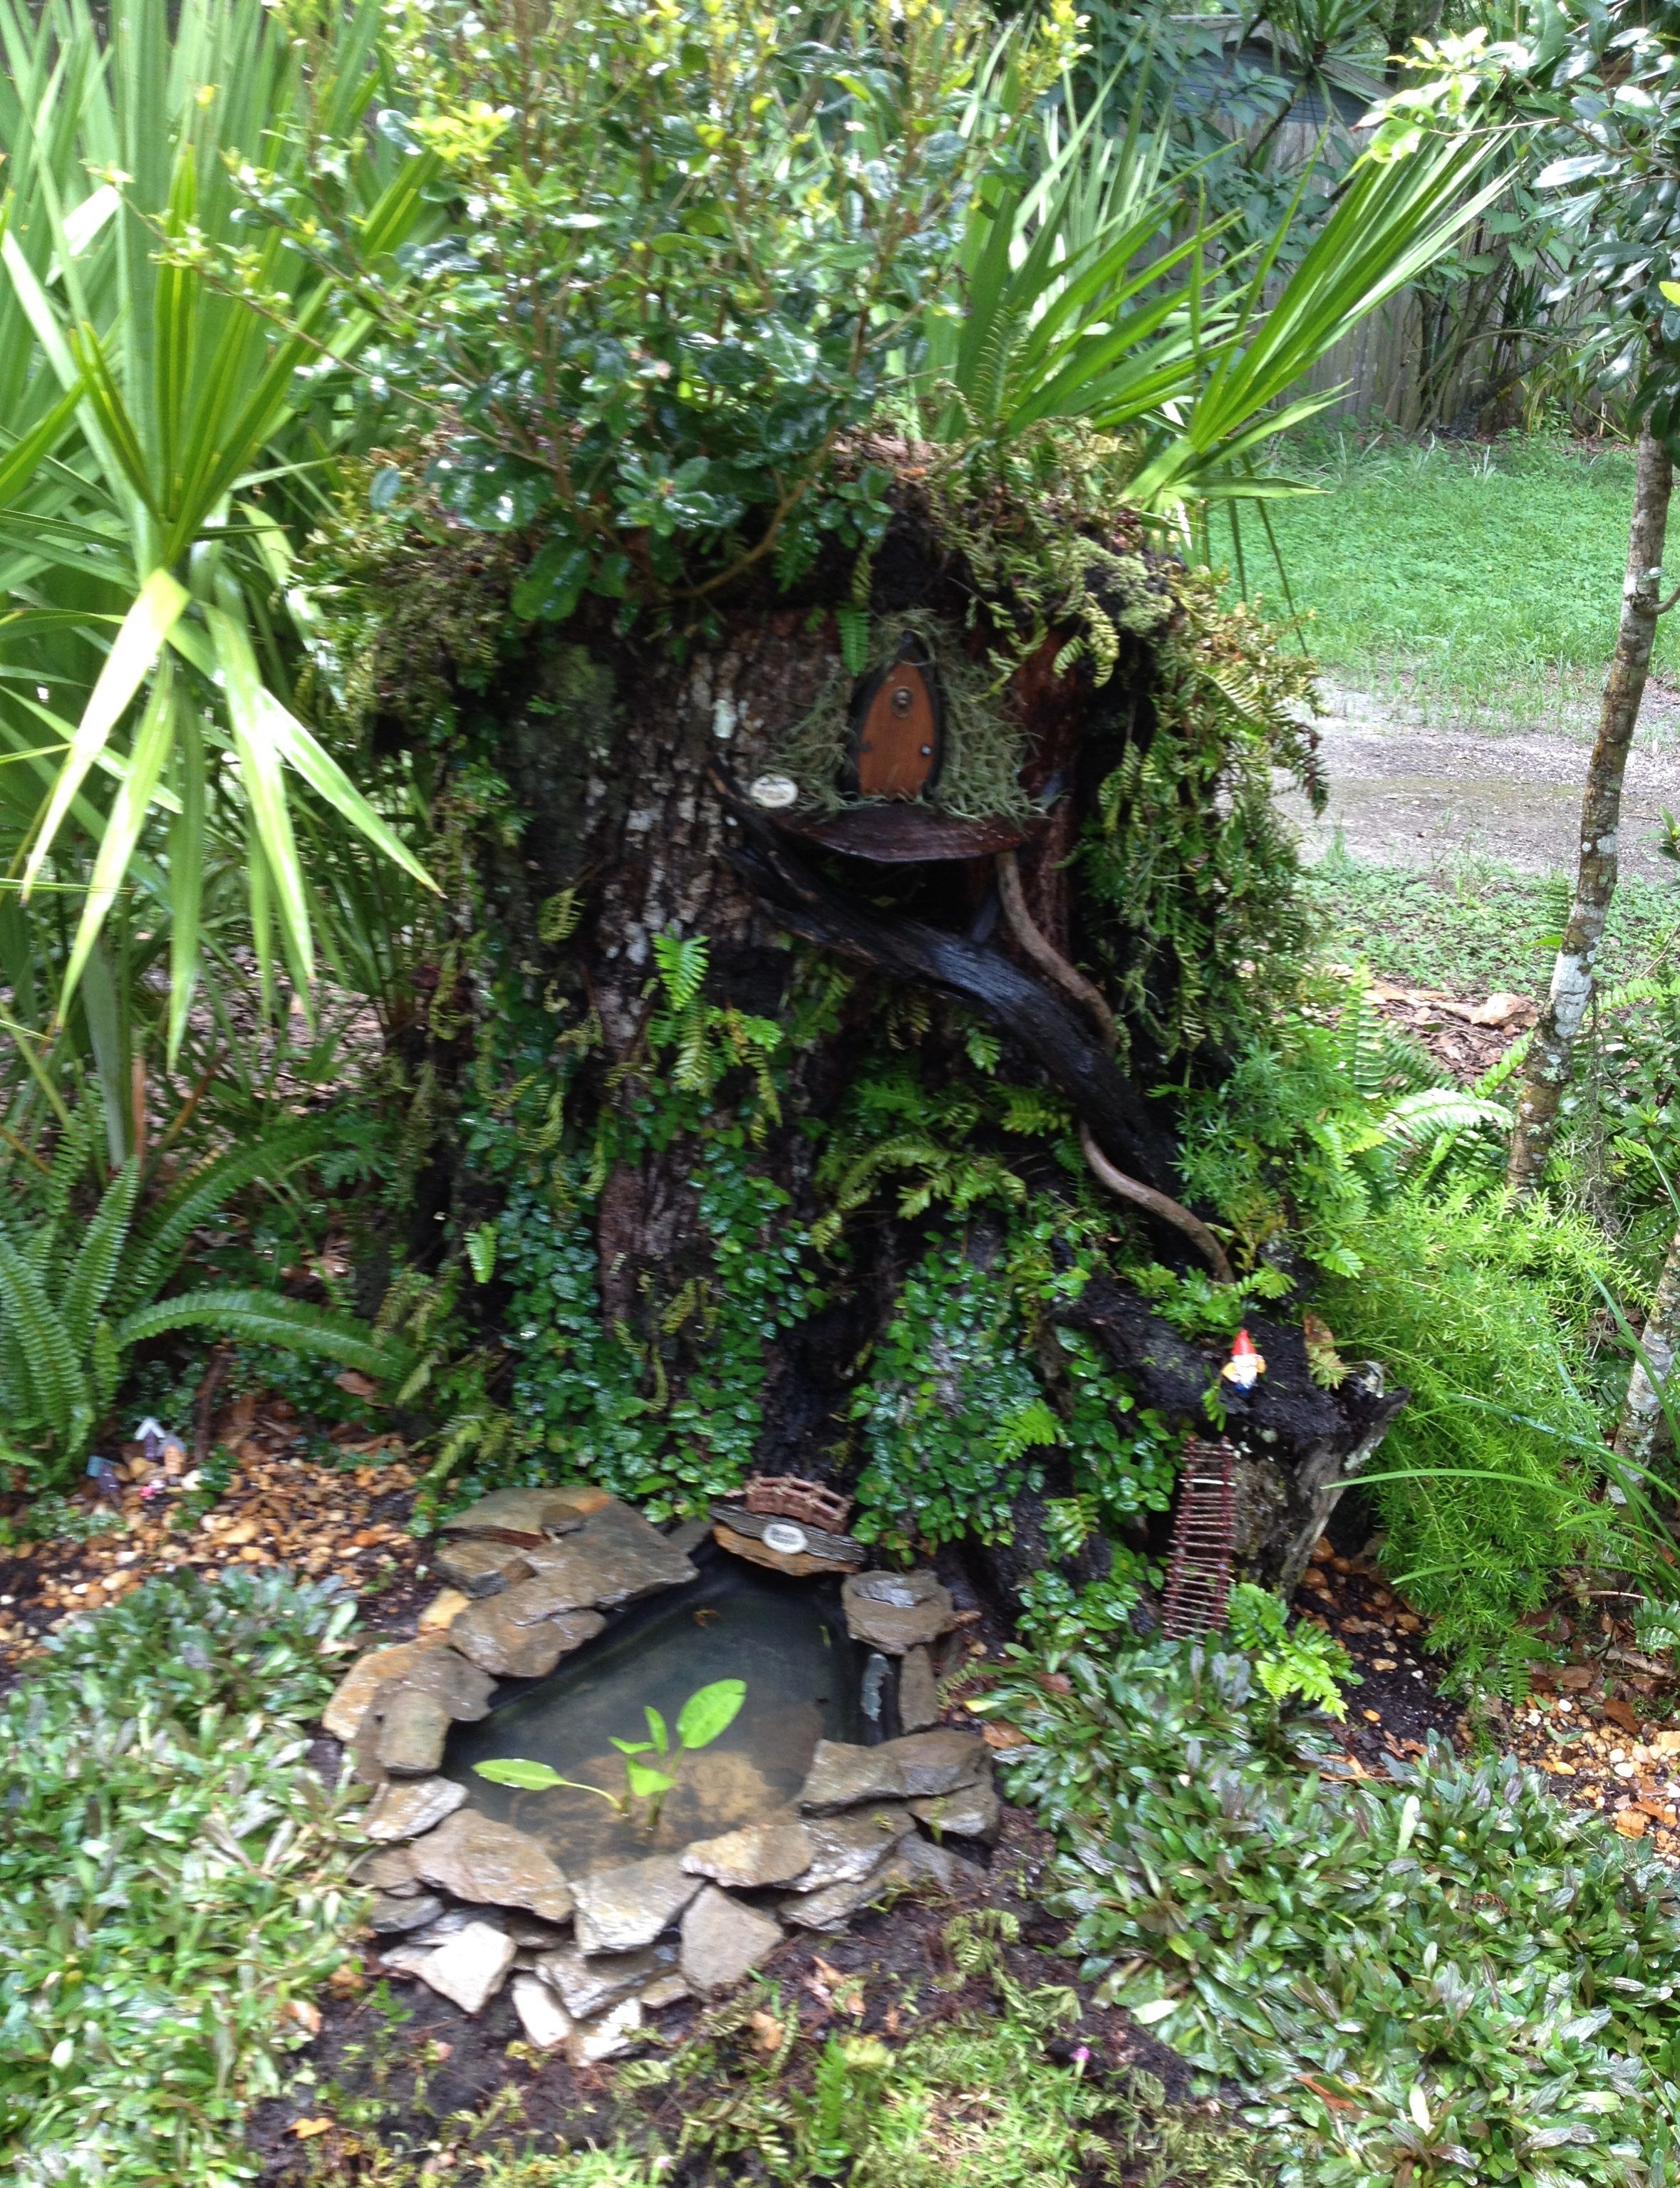 My Fairy Garden Inspired By Others Seen On Pinterest! It's